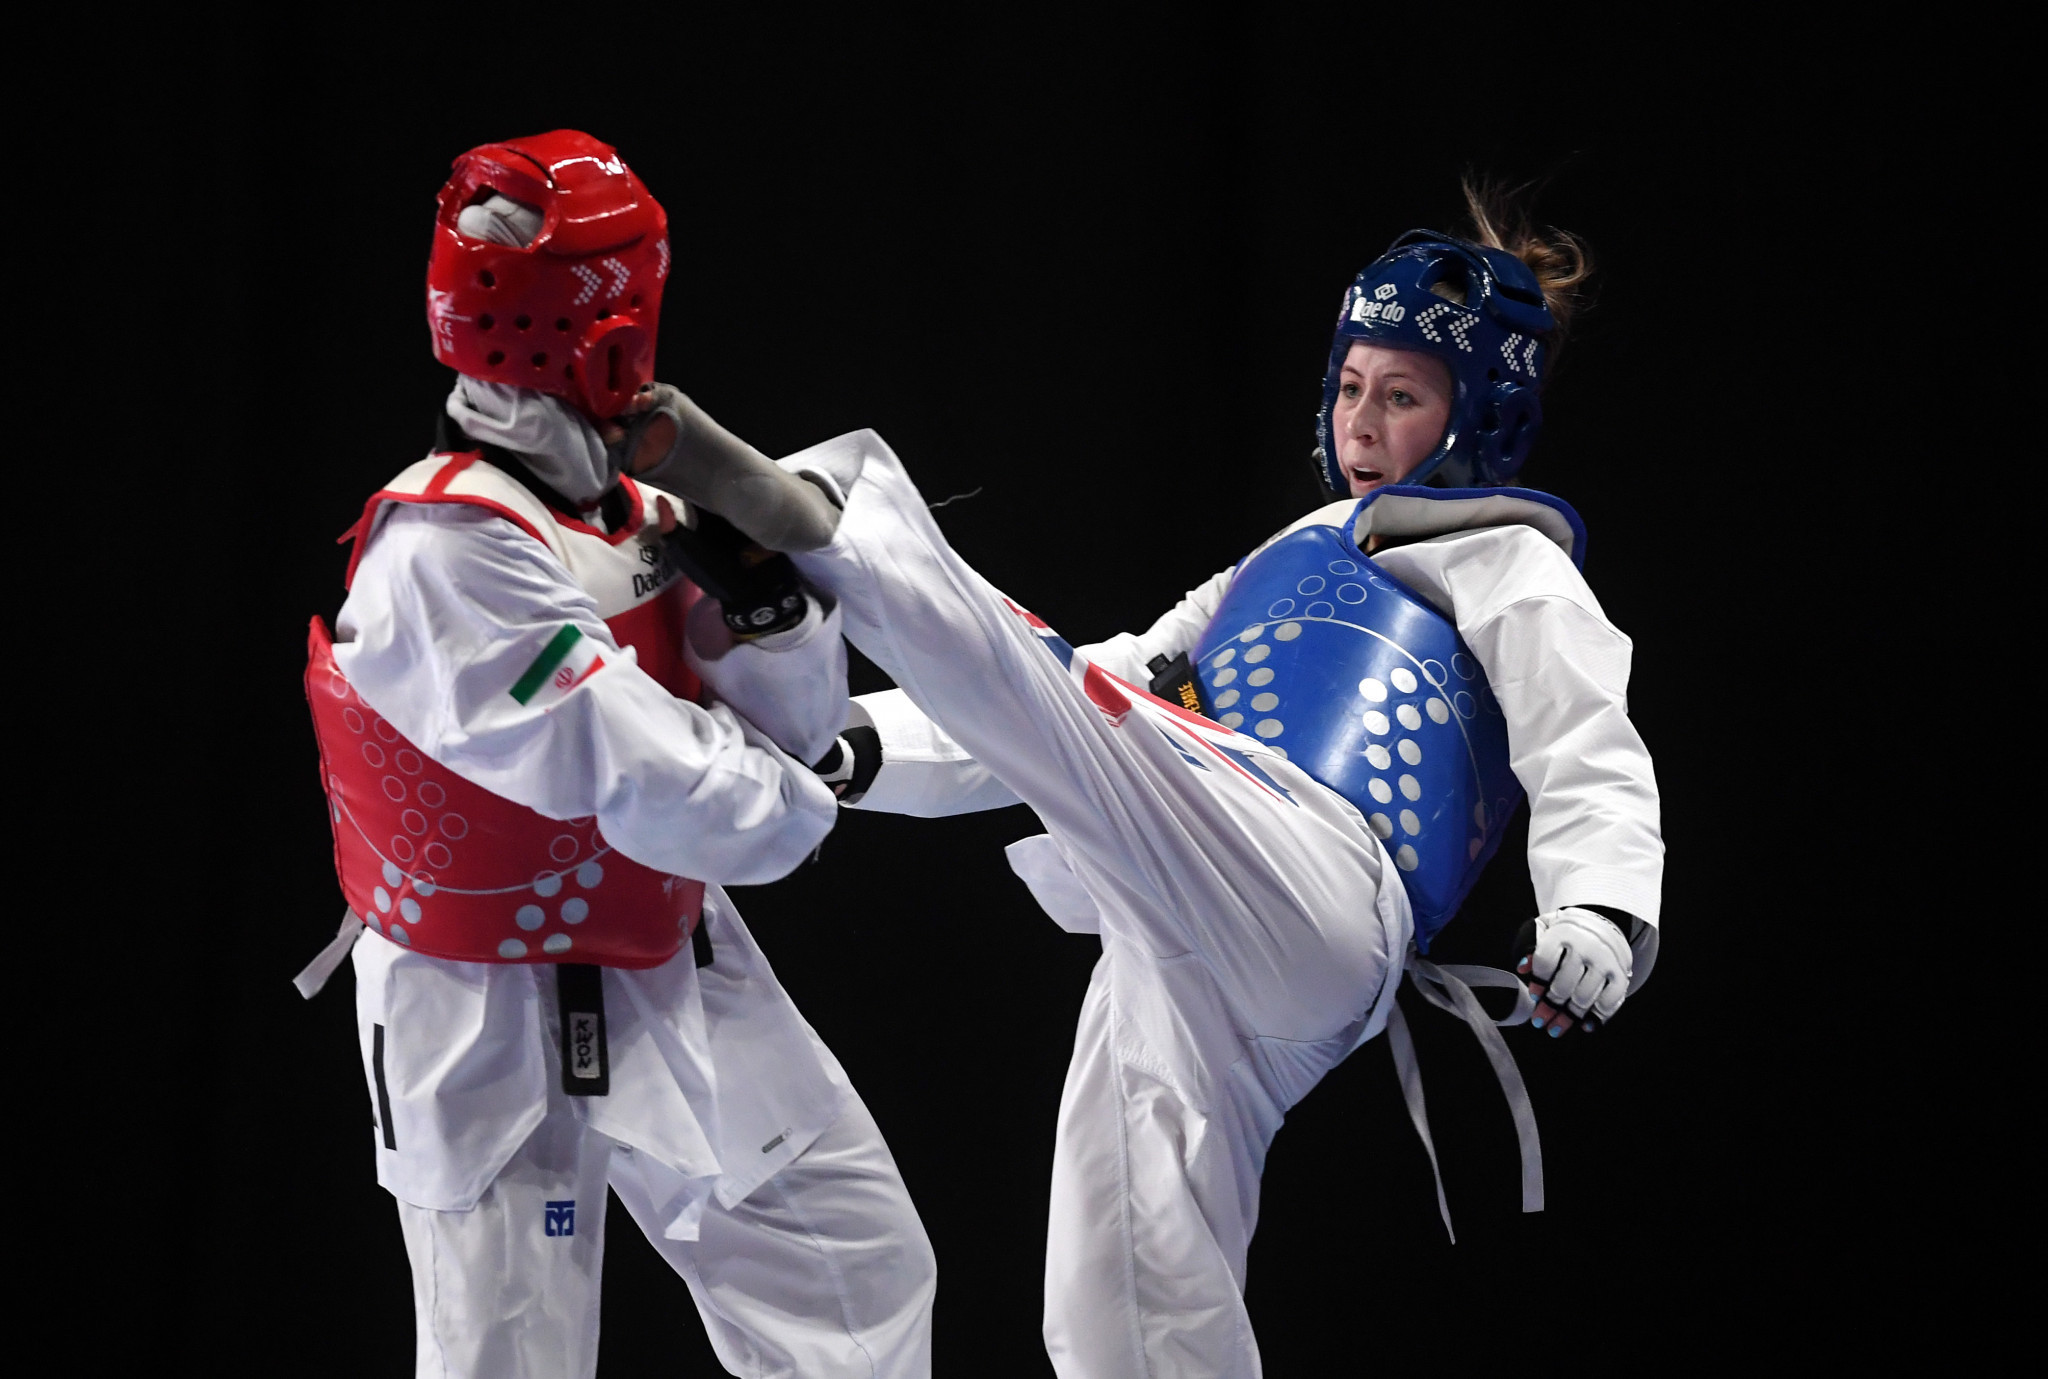 Two-time Olympic champion Jade Jones of Britain progressed to tomorrow's women's under-57kg final ©Getty Images